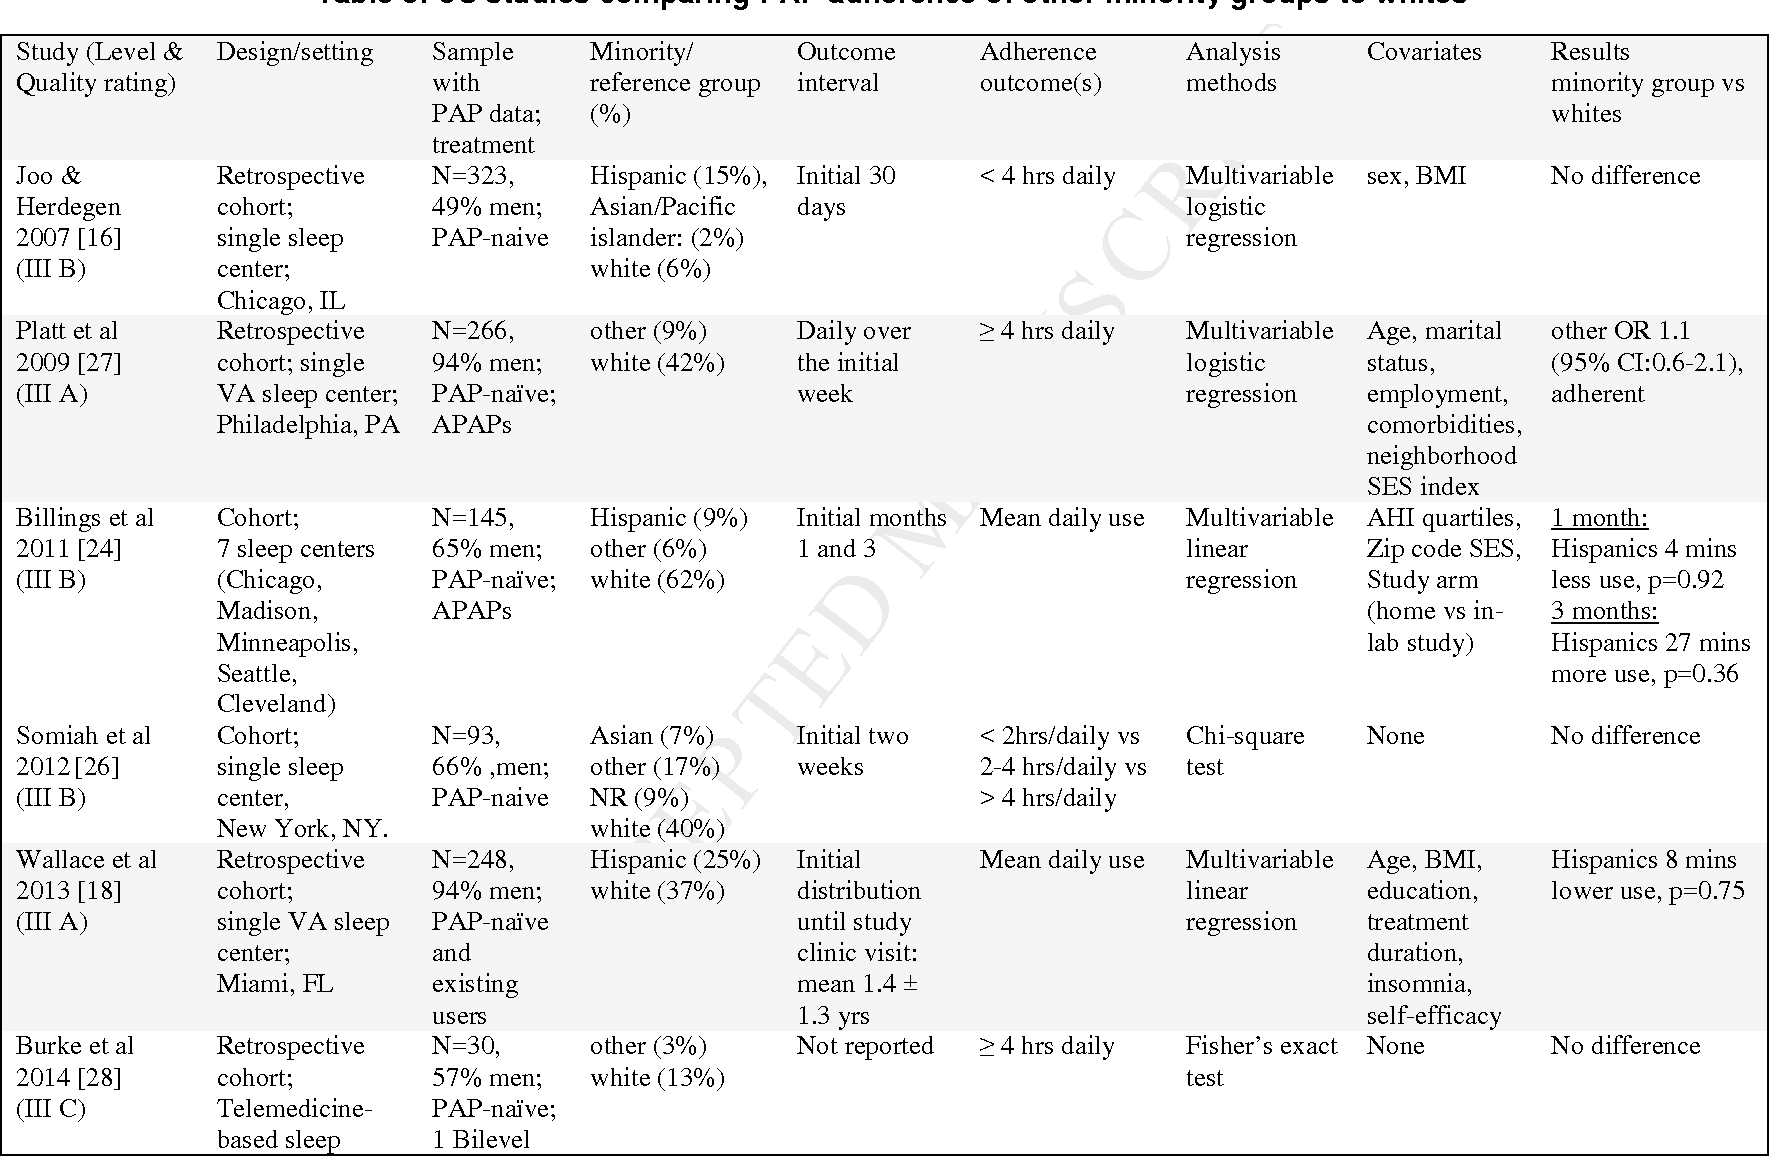 Table 3: US studies comparing PAP adherence of other minority groups to whites